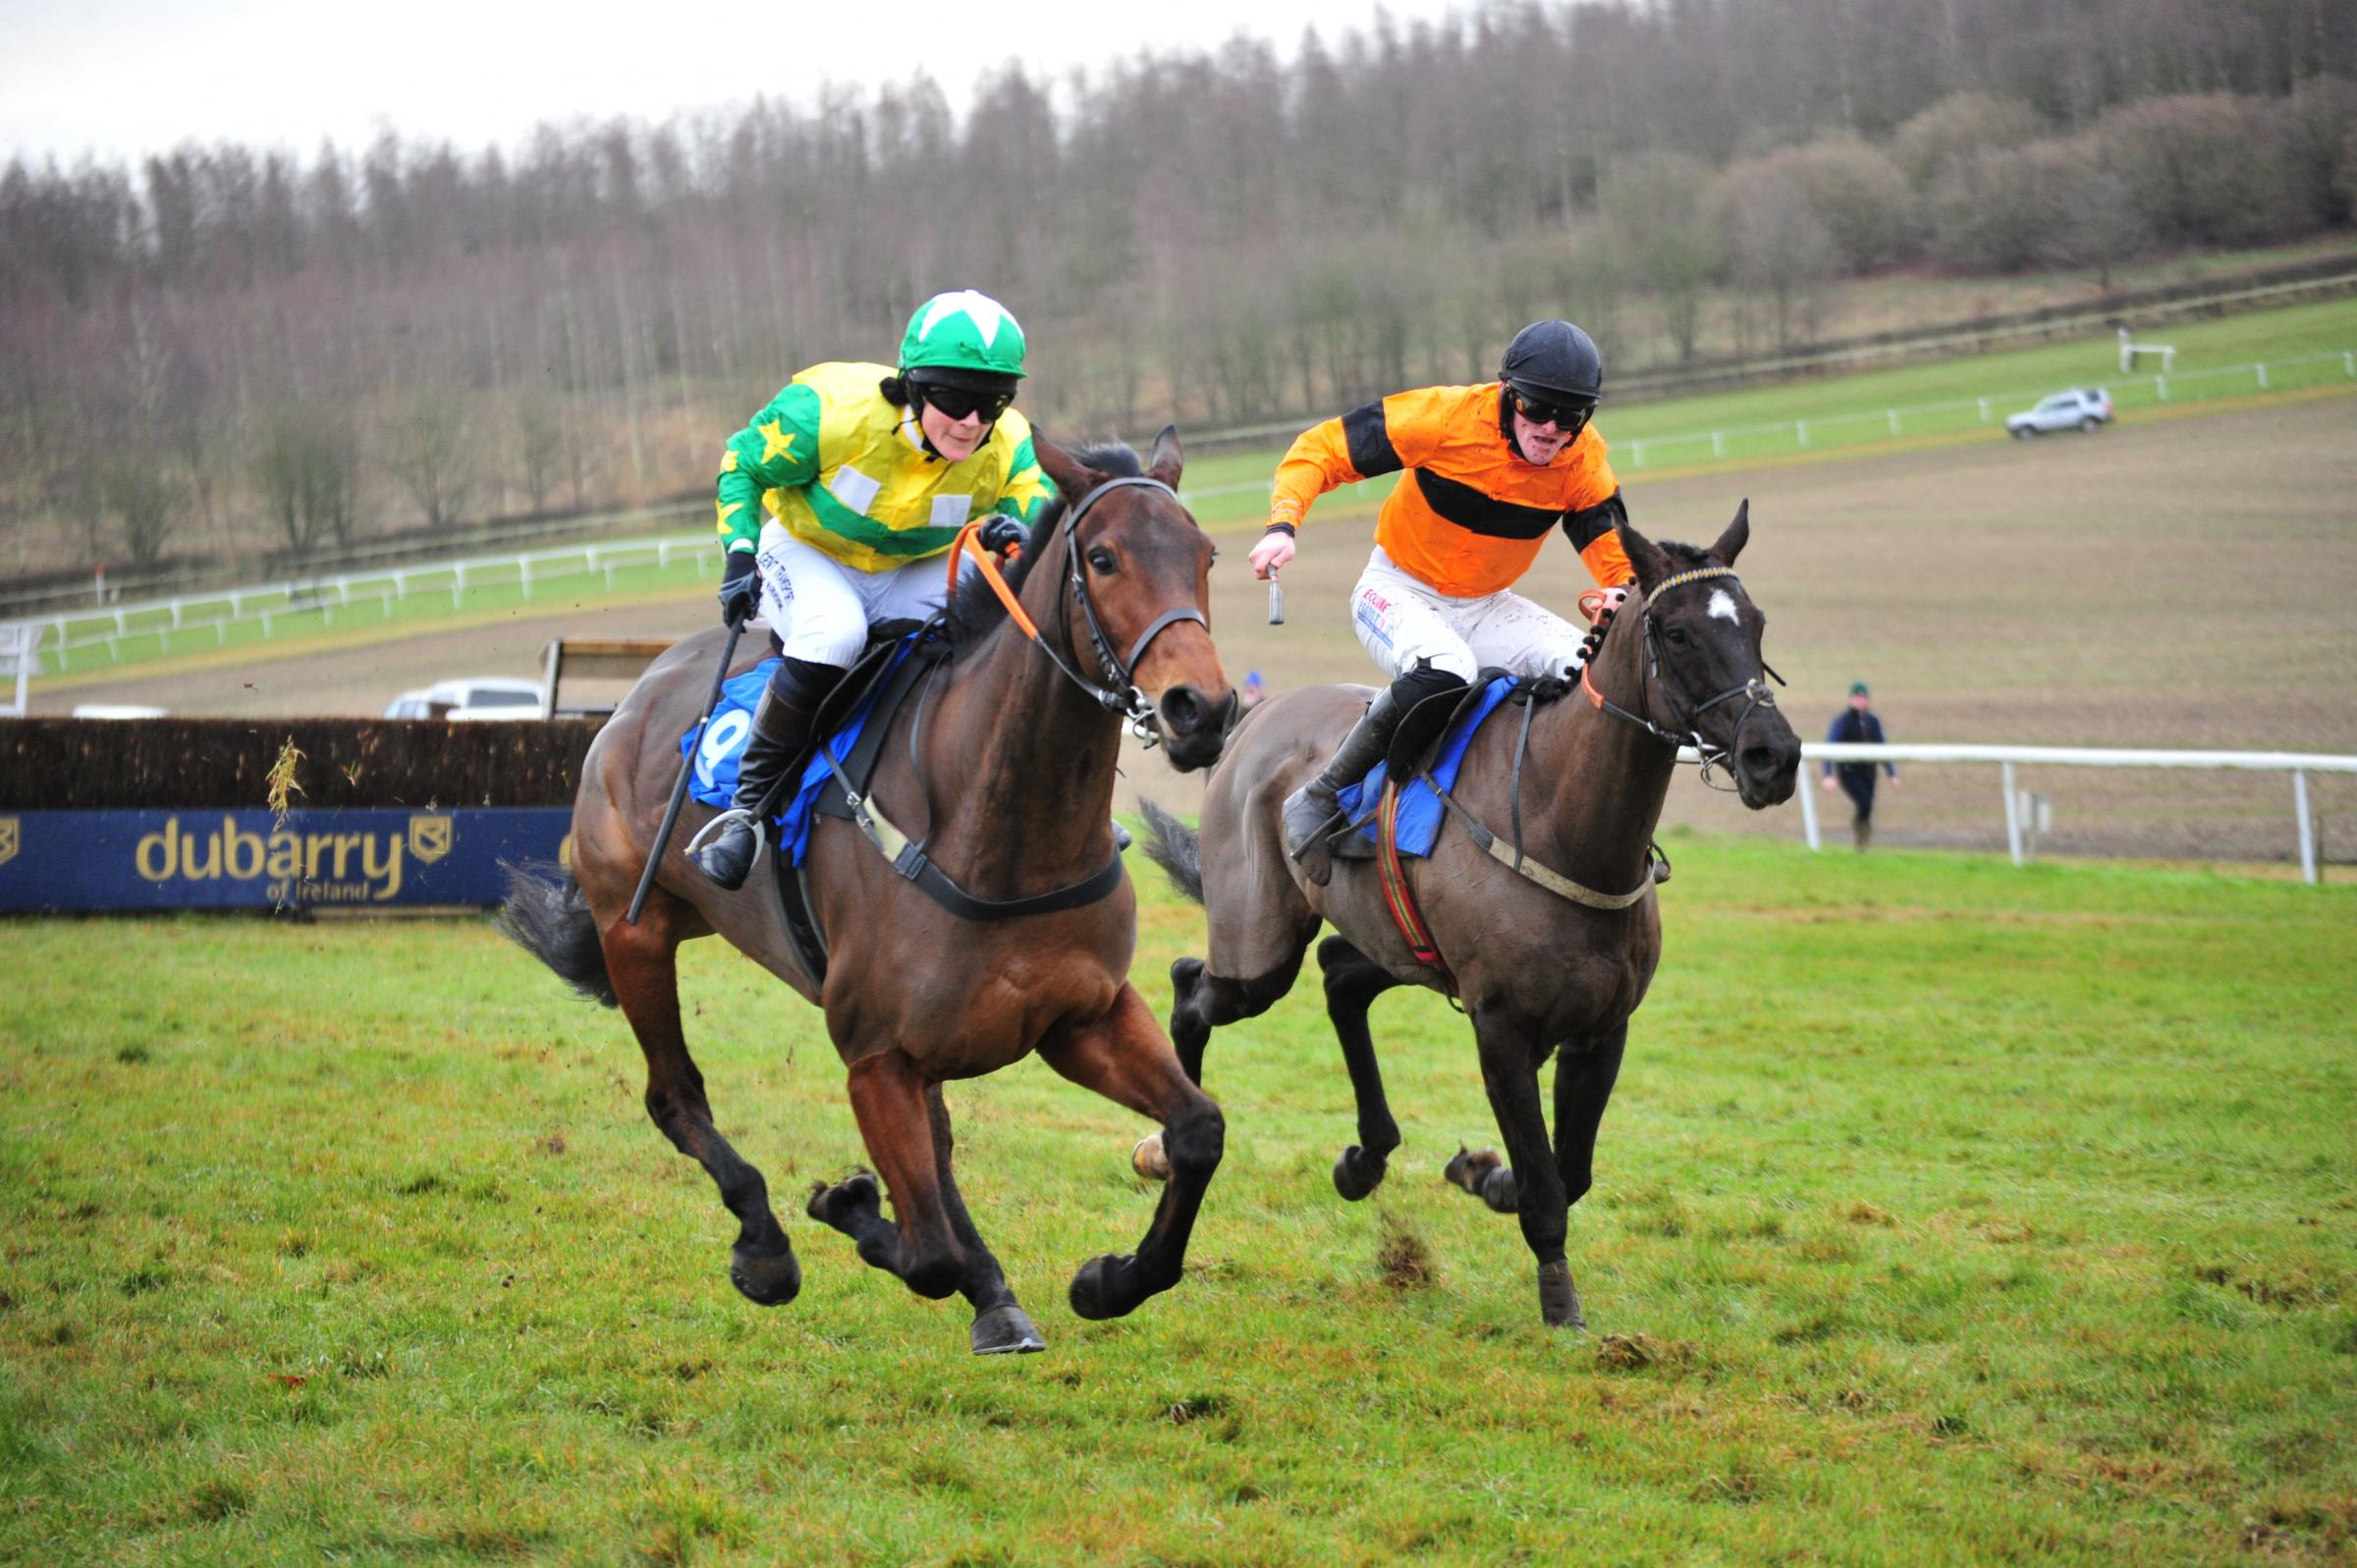 Isla's Dream and Jo Supple win the opening race at Barbury on Sunday, December 16.